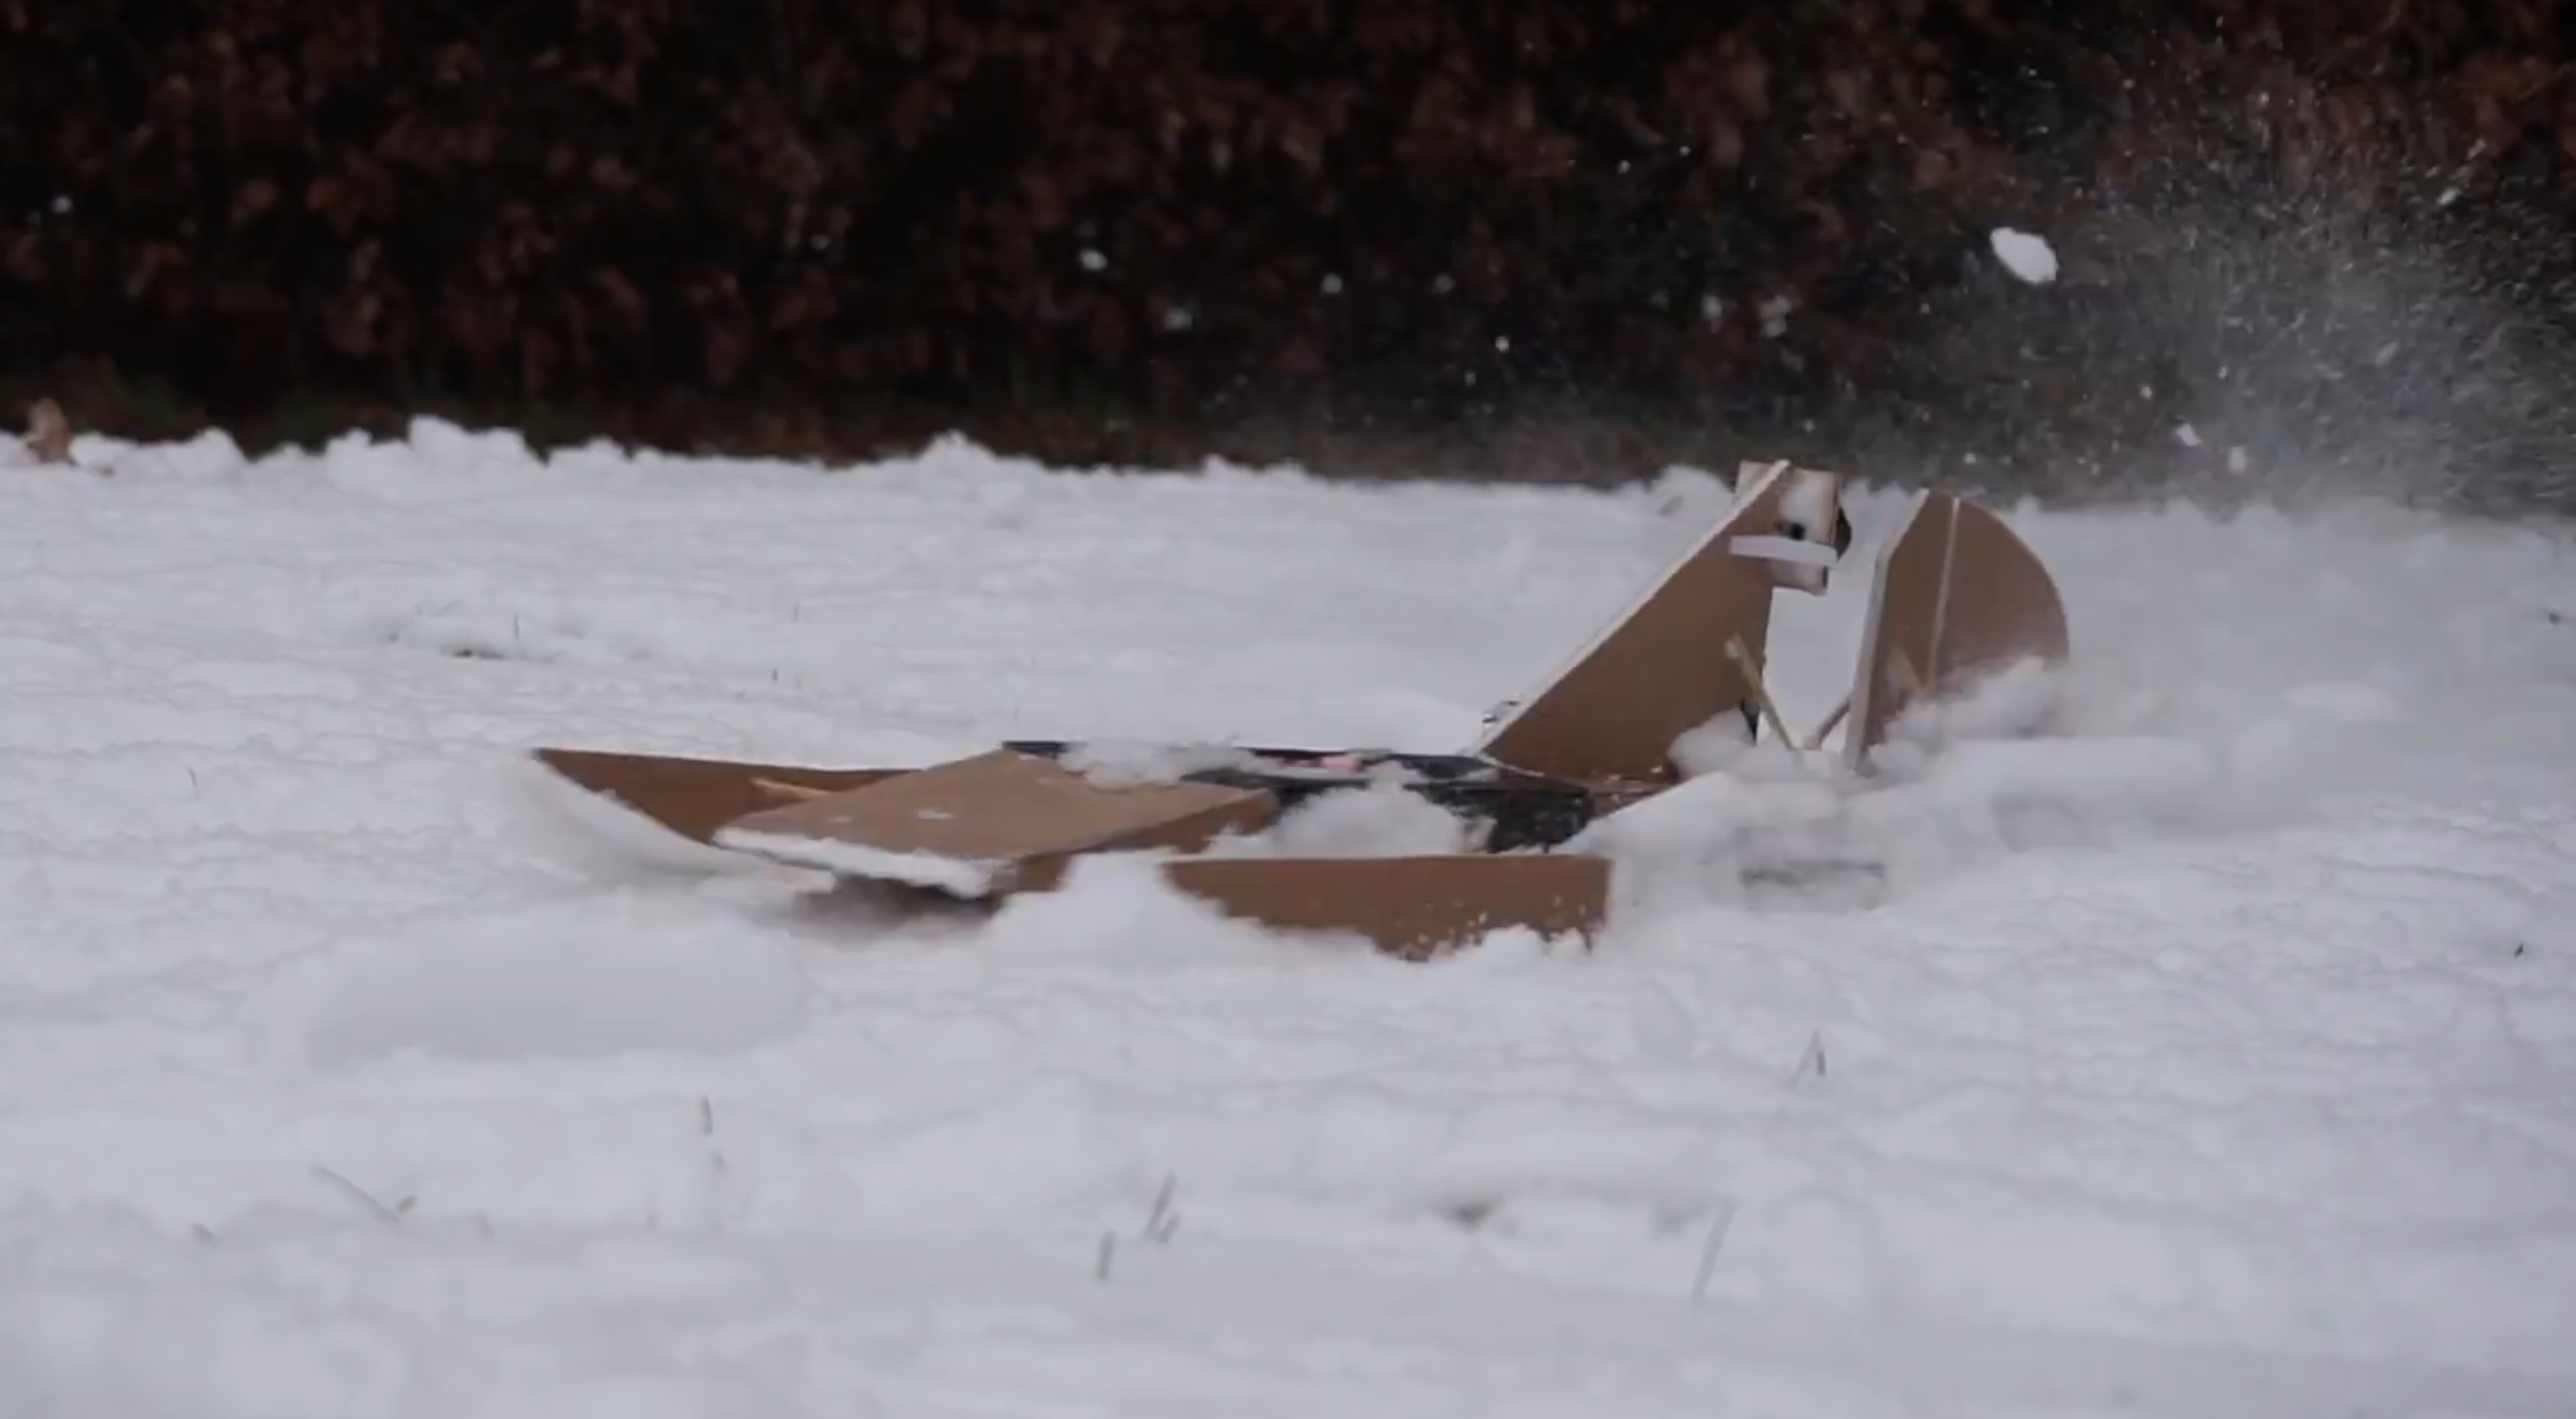 RC Sled Racer with FREE PLANS! | Maker Share